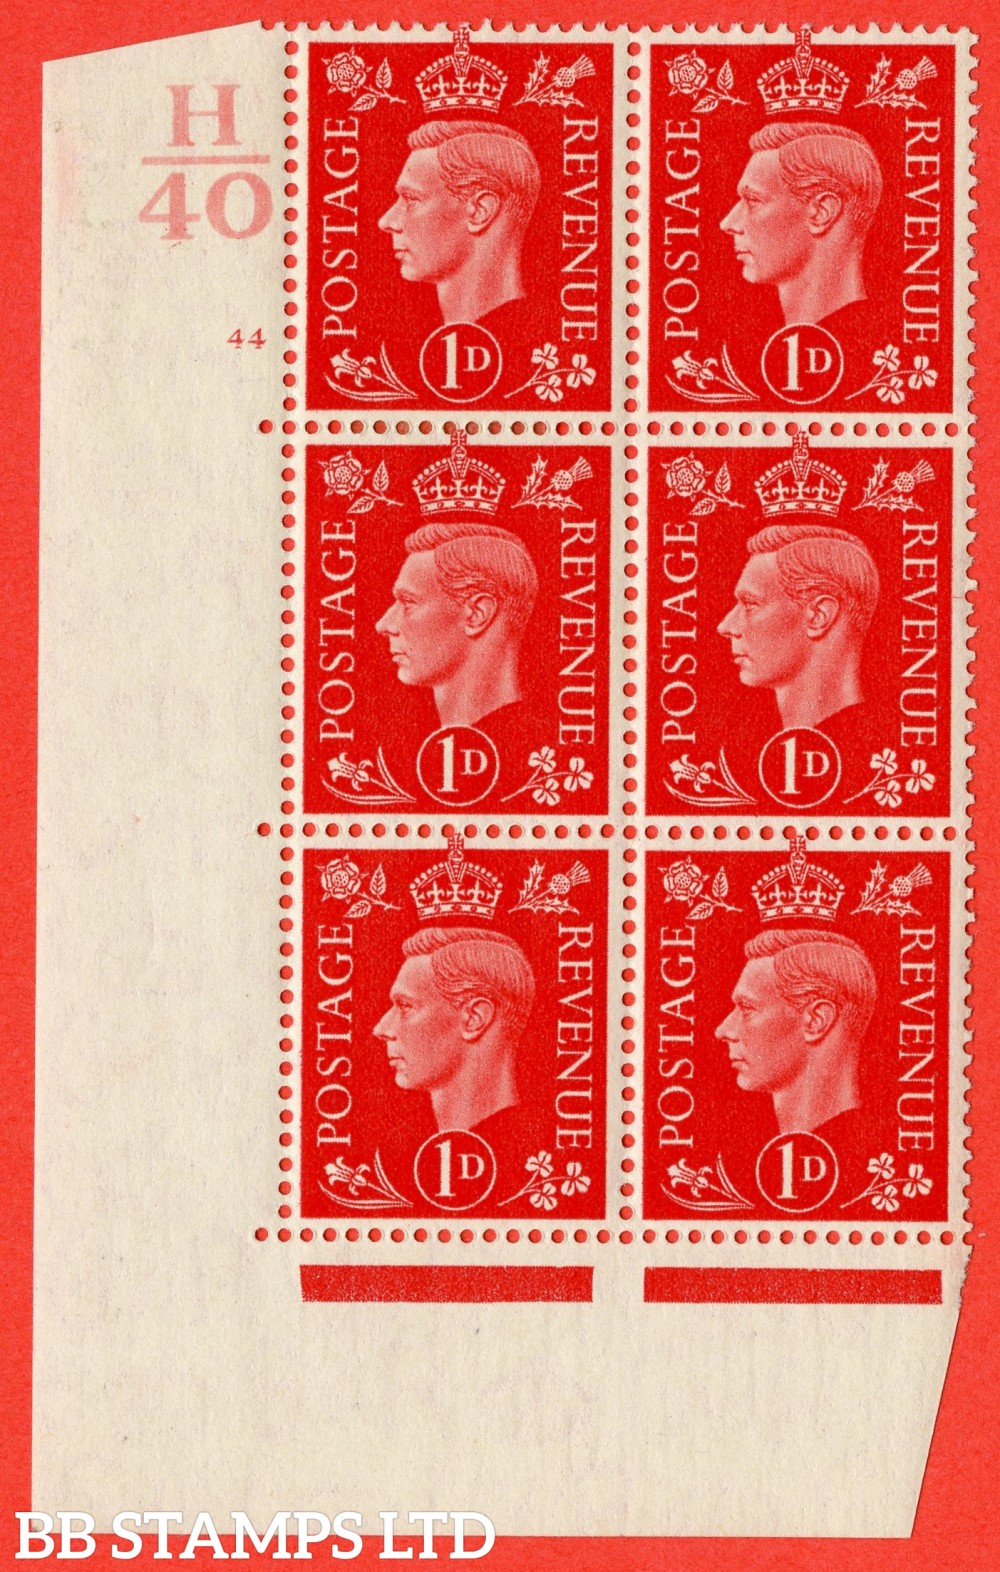 "SG. 463. Q4. 1d Scarlet. A superb UNMOUNTED MINT "" Control H40 cylinder 44 no dot "" block of 6 with perf type 5 E/I with marginal rule."